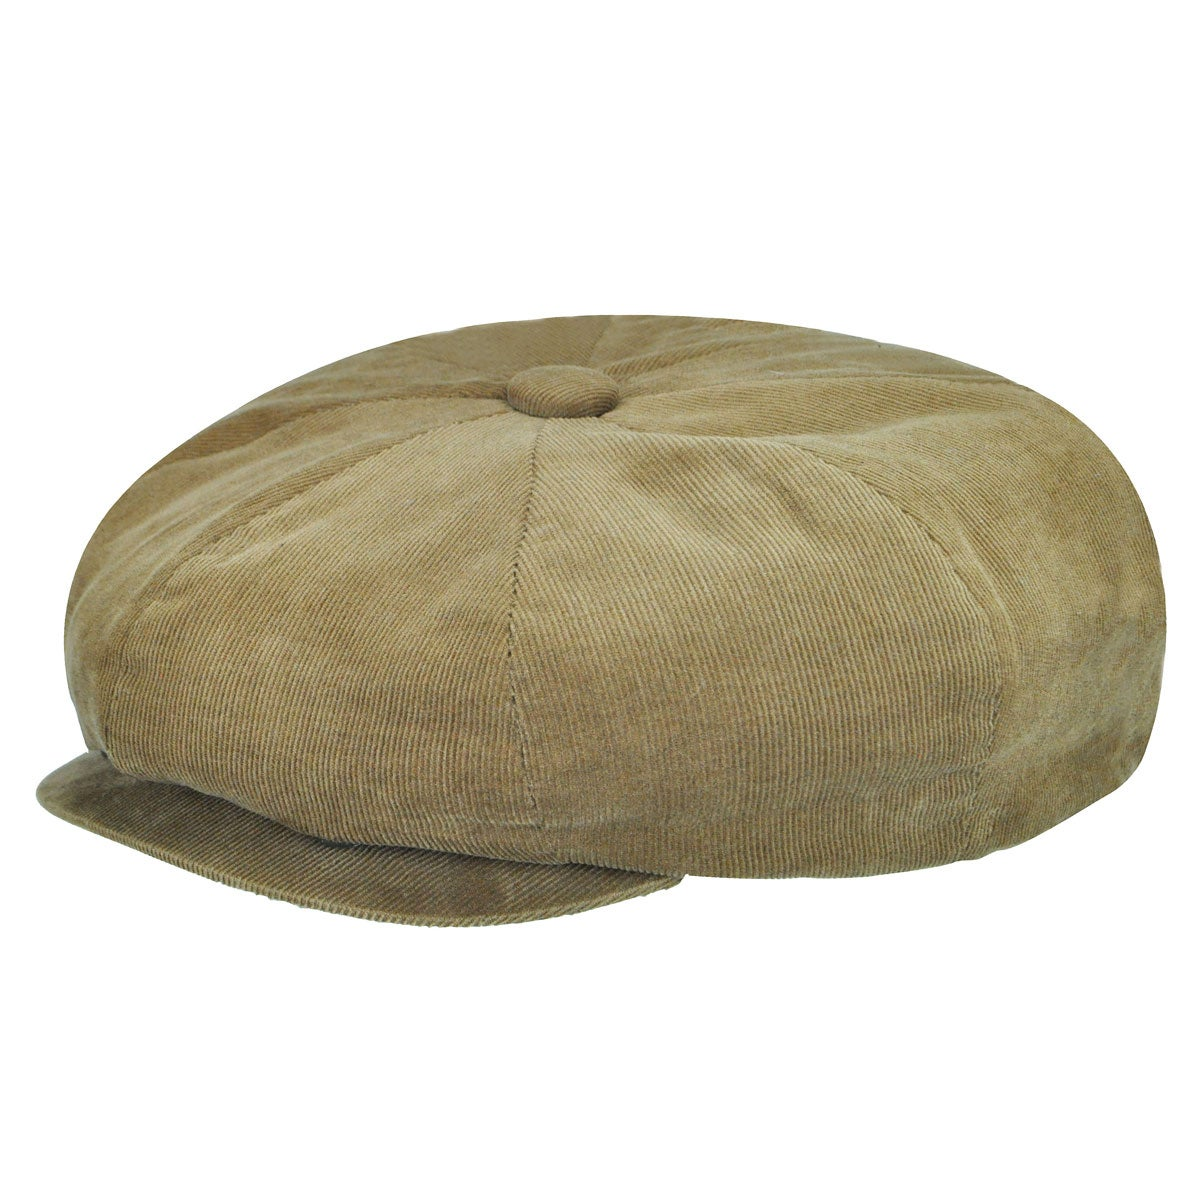 Hippie Hats,  70s Hats Wool Blend Newsboy Cap $37.50 AT vintagedancer.com